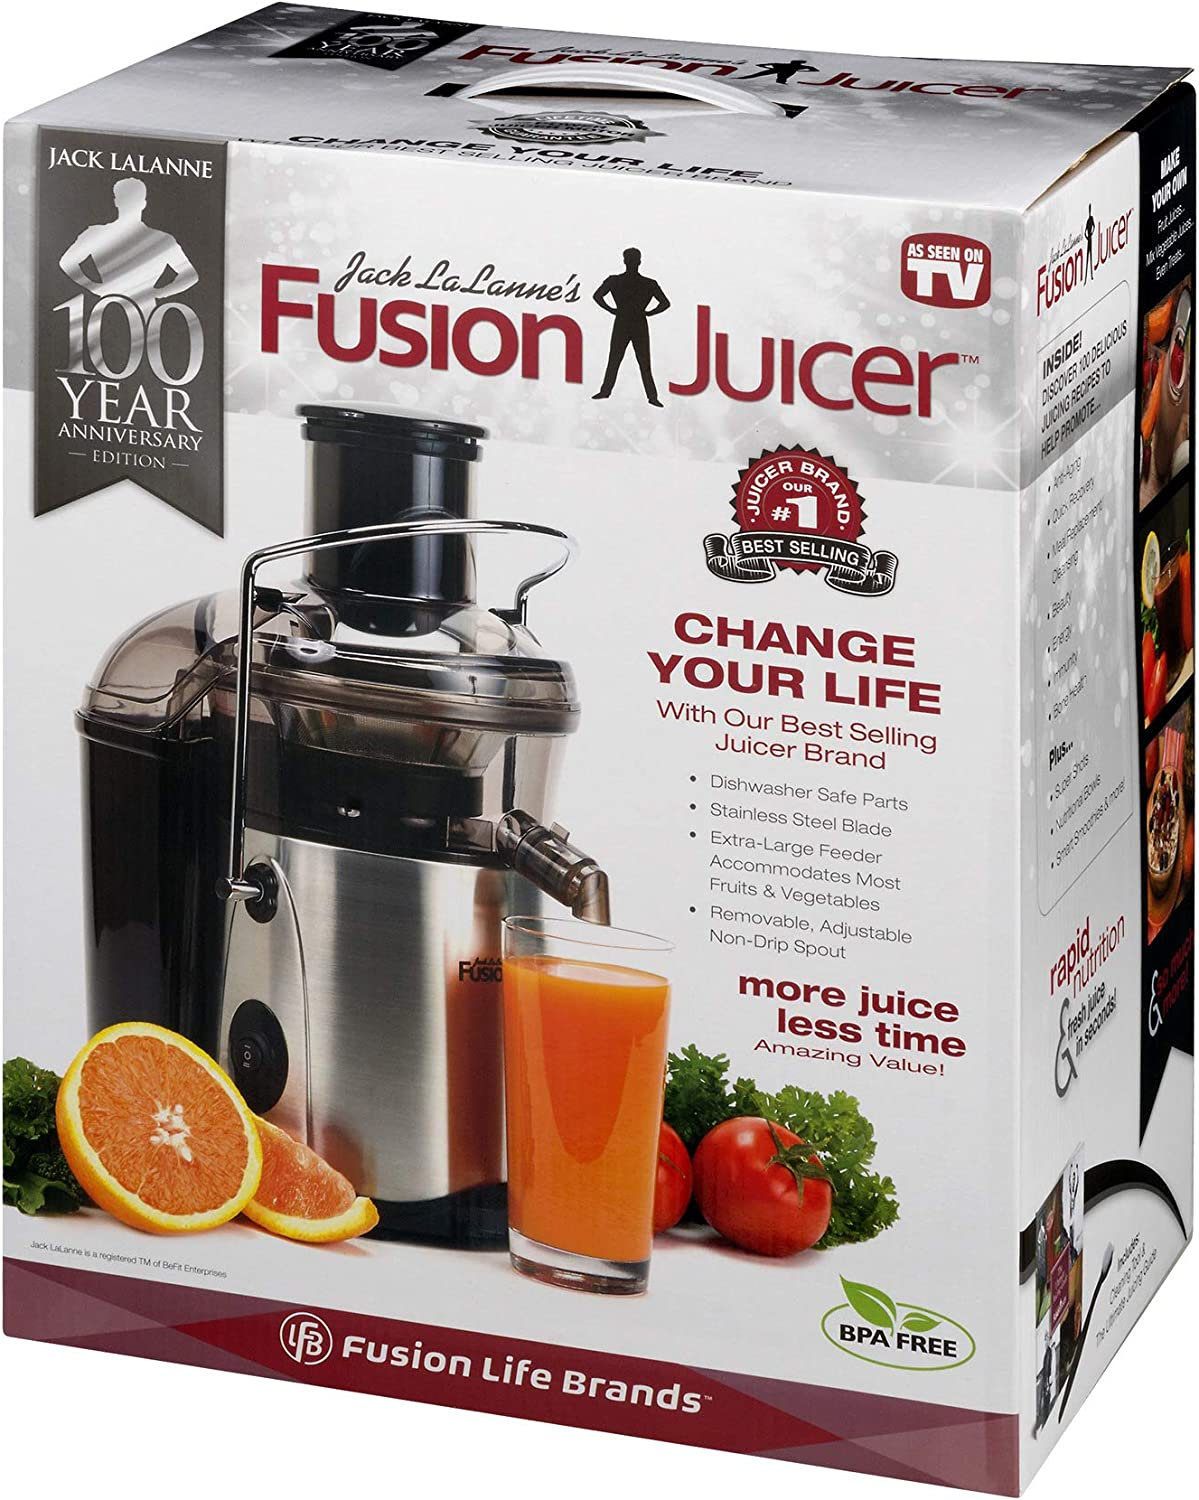 Jack Lalanne Fusion Juicer Review | My